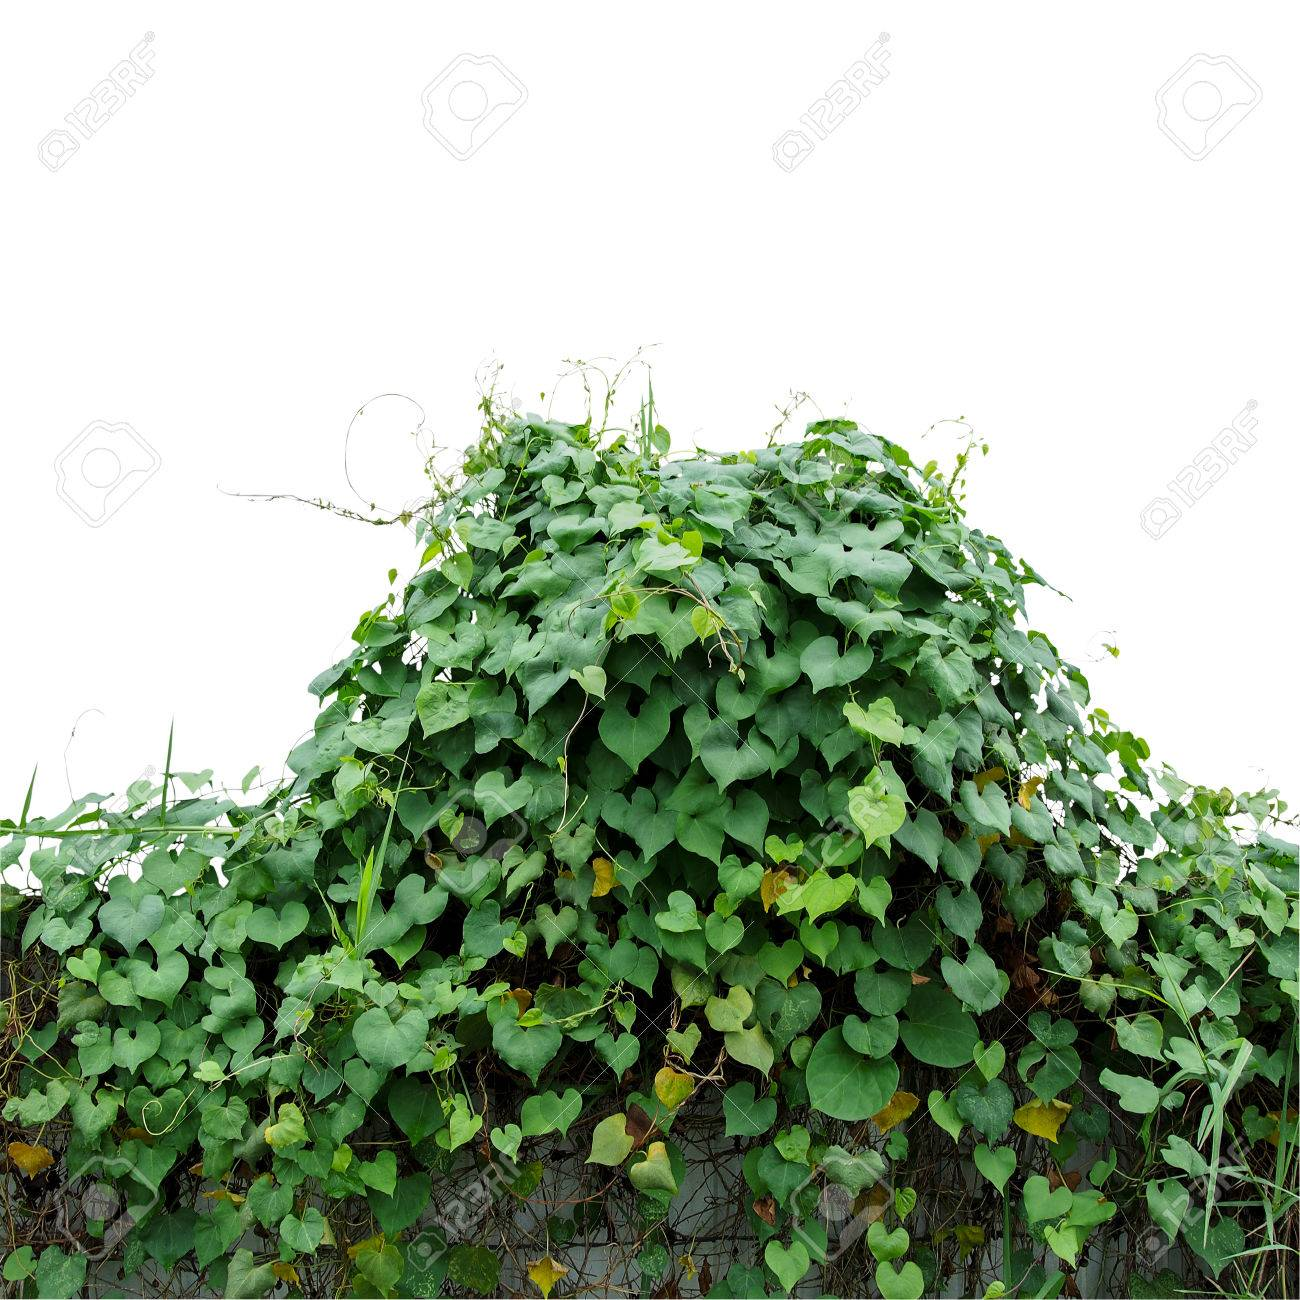 Heart Shaped Green Leaves Climbing Wild Vines Obscure Morning